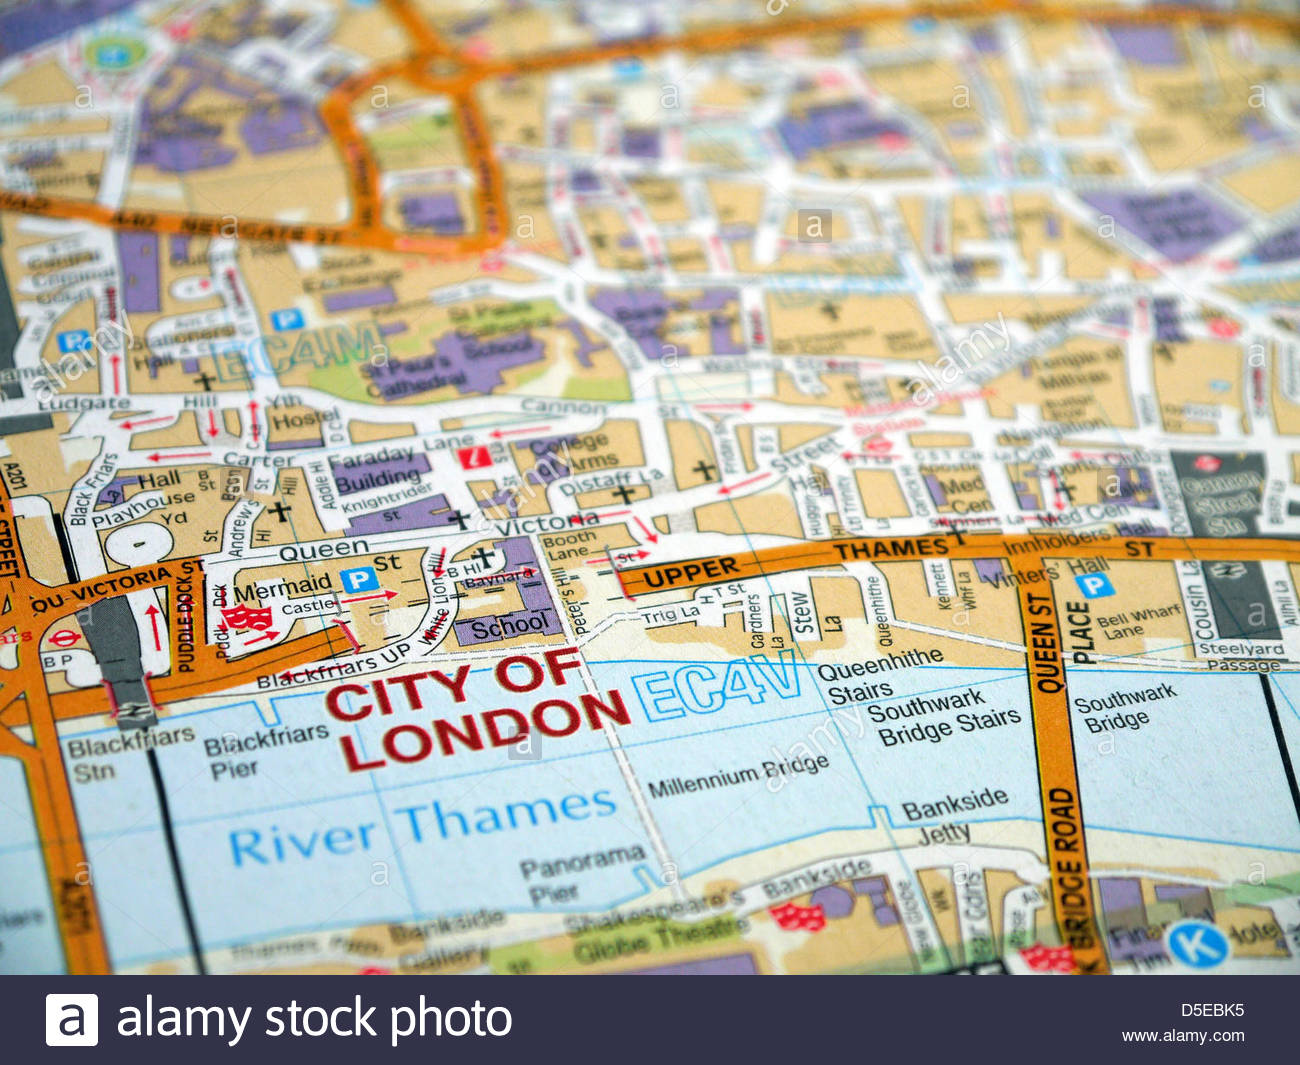 Macro photo of London showing London CIty and River Thames - Stock Image